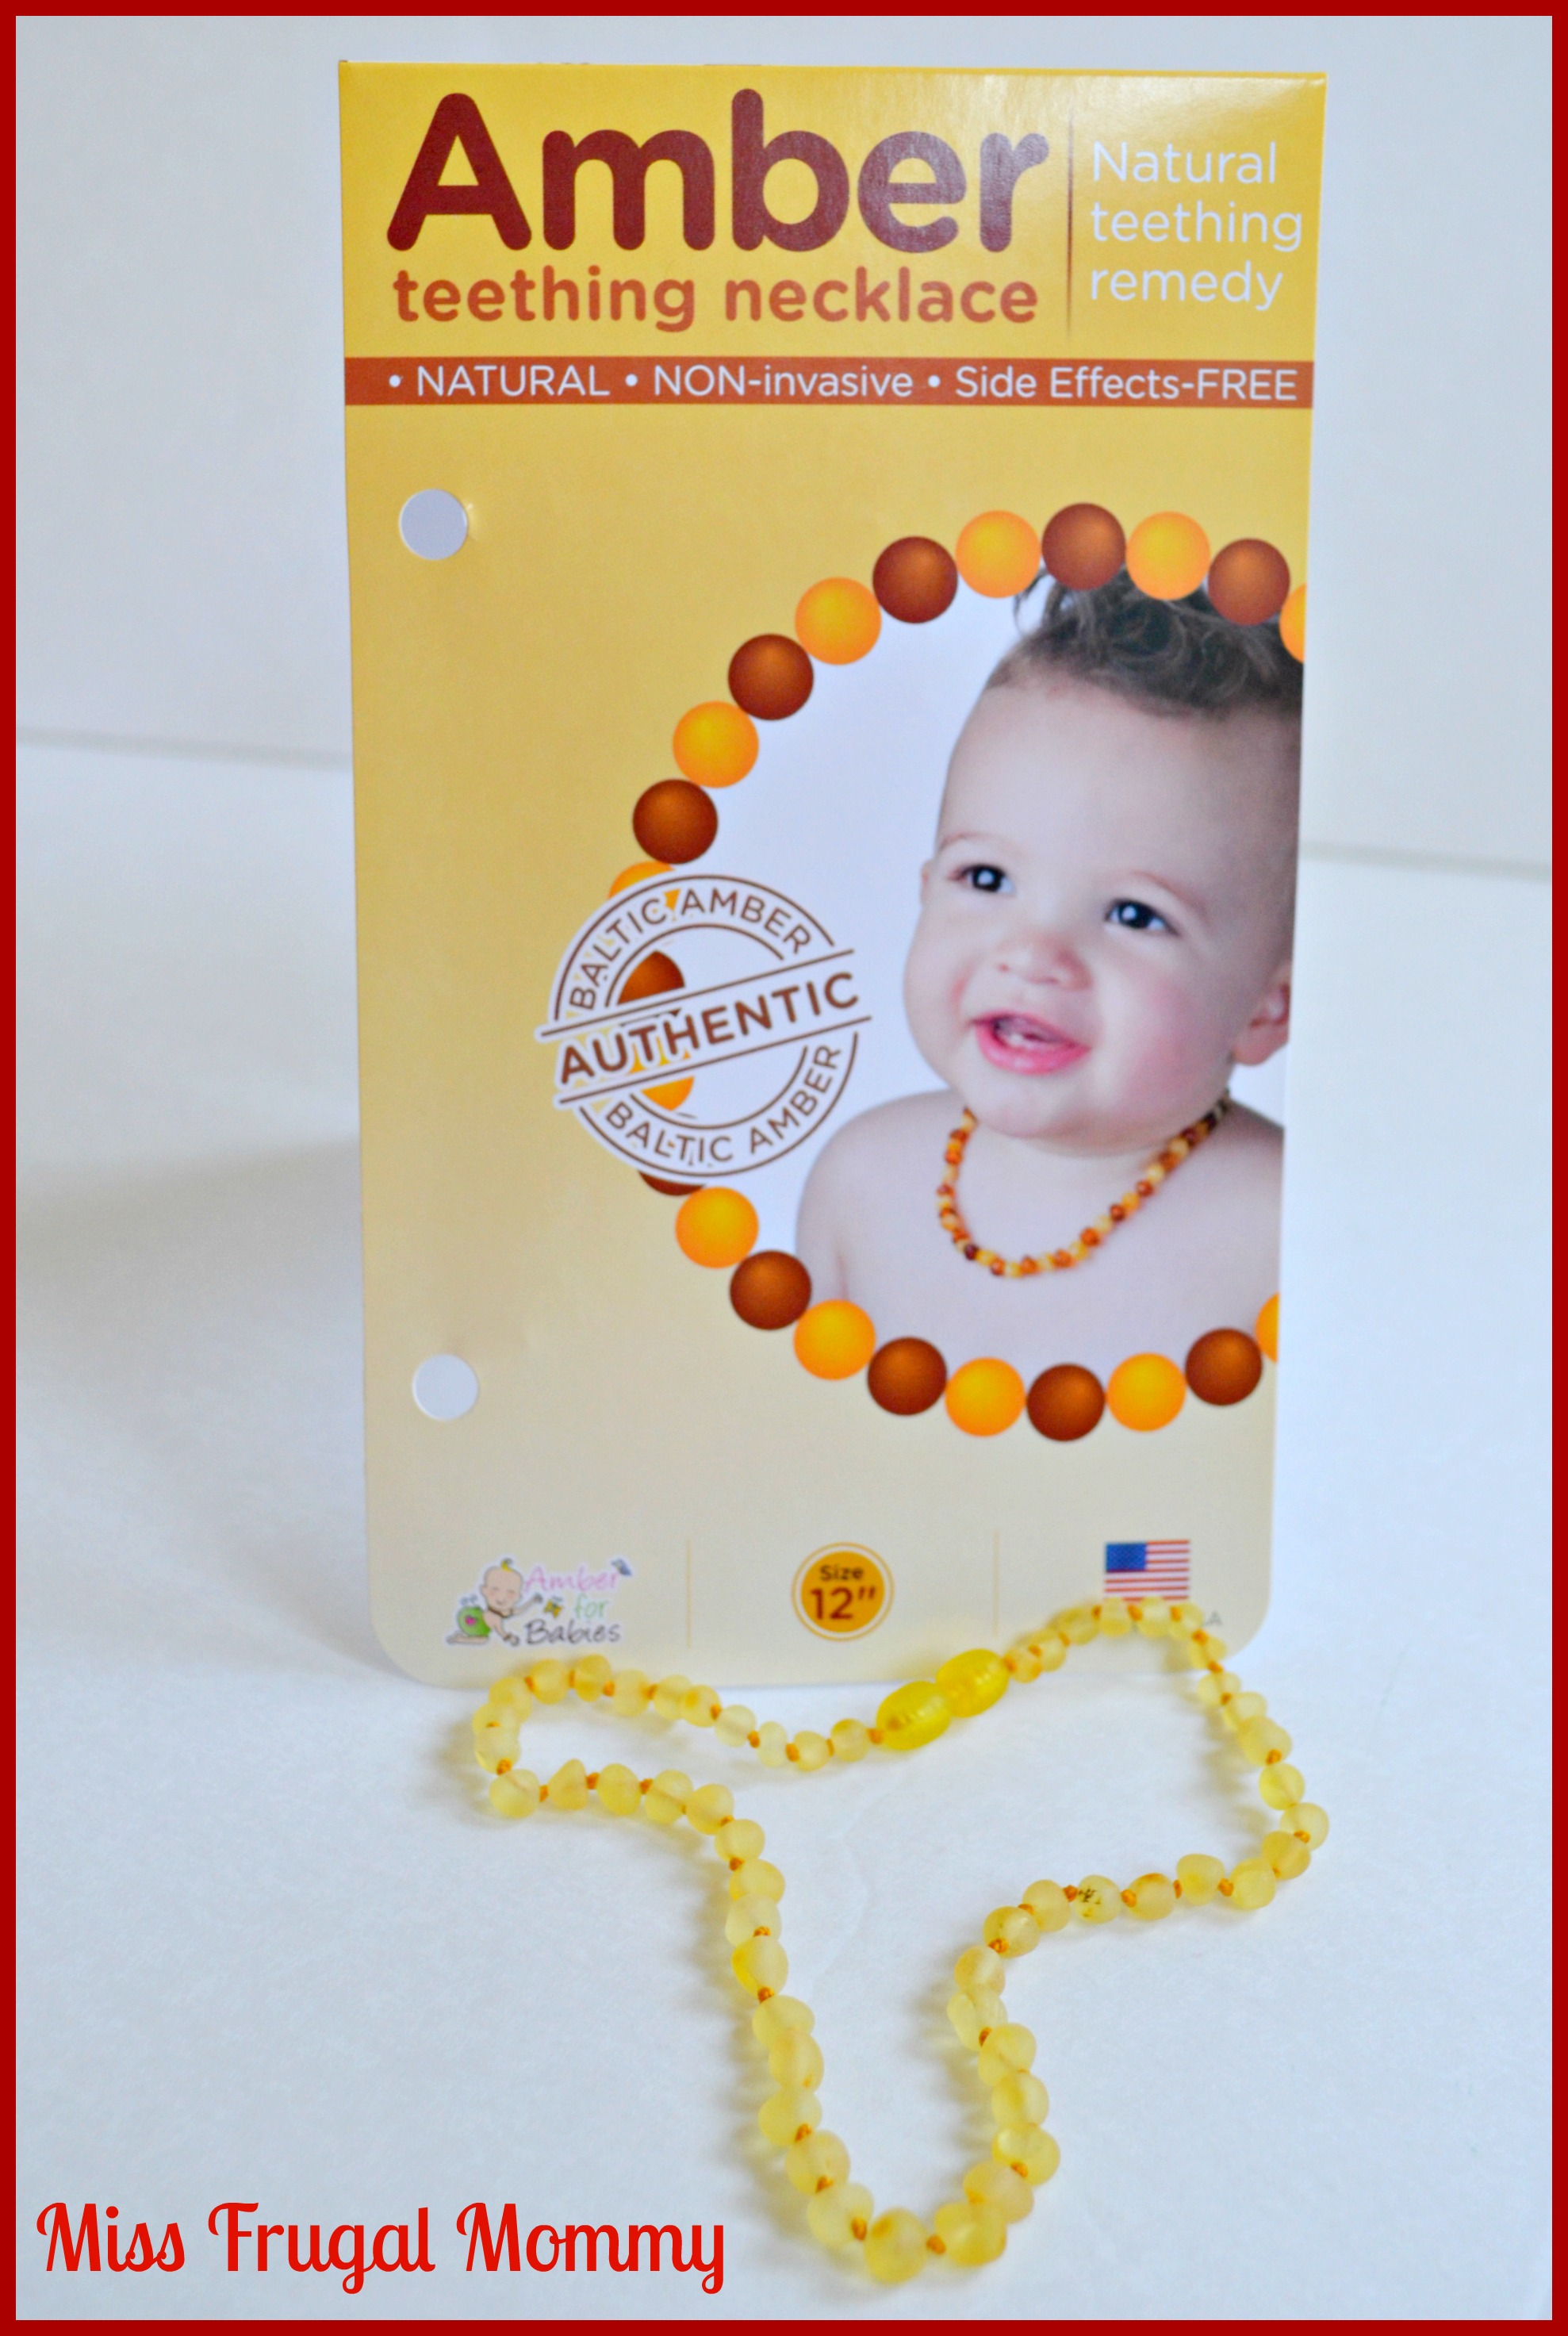 Lemon Raw Beads Amber Teething Necklace Review Getting Ready For